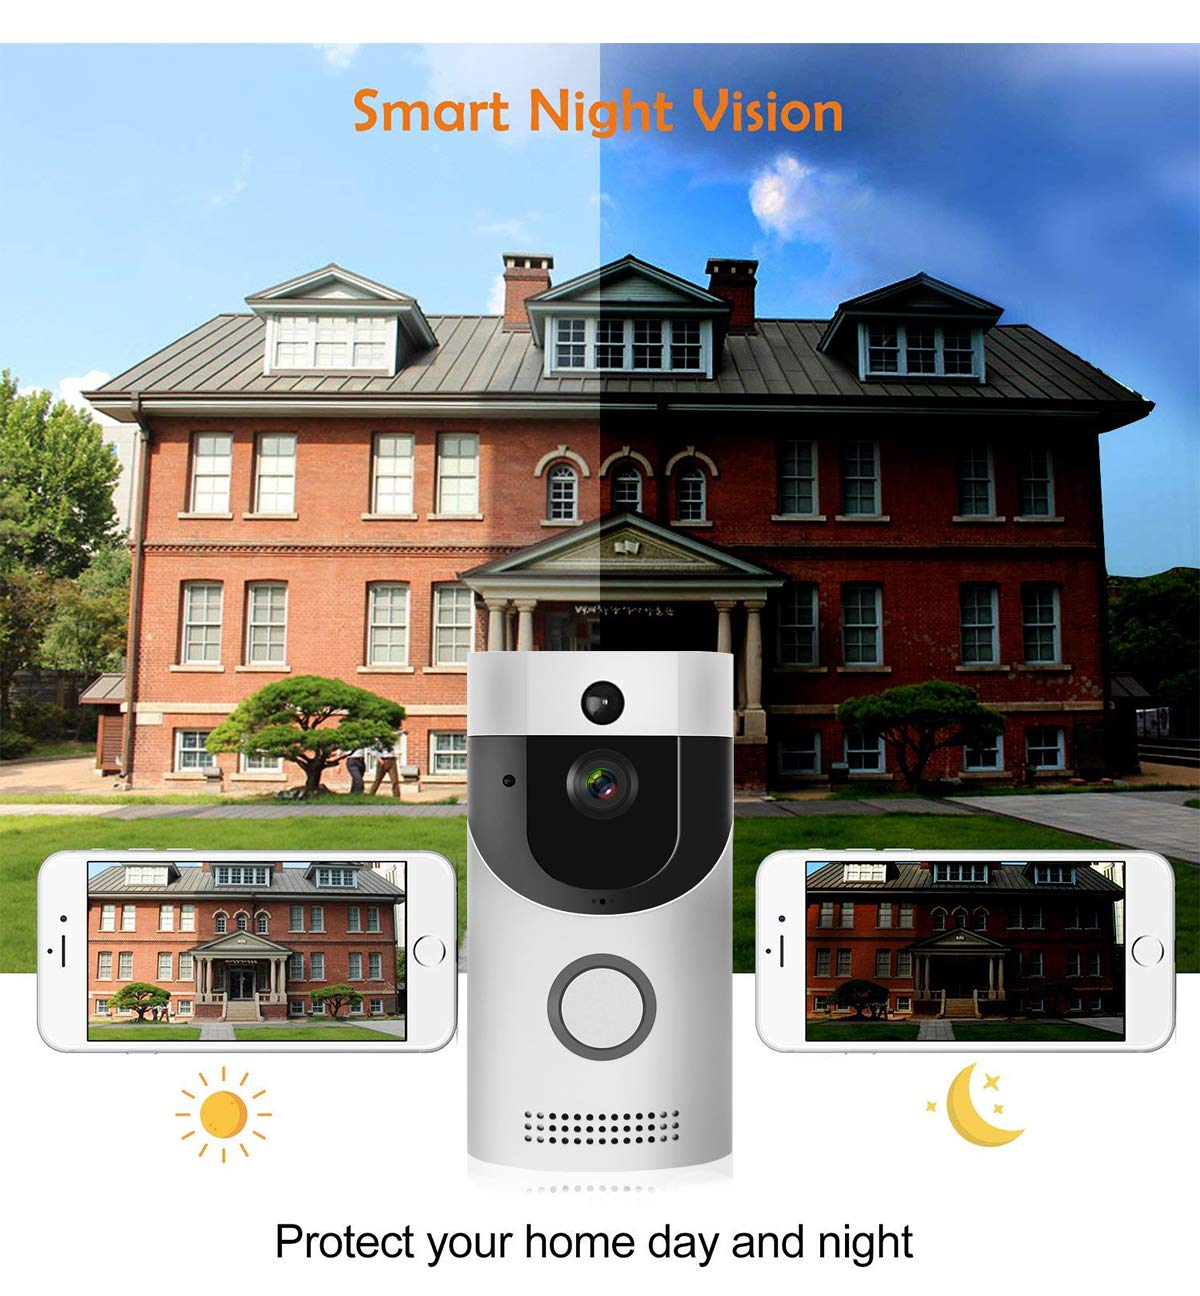 WIFI Video Doorbell, Smart Doorbell HD Security Camera with Chime, Real-Time Two-Way Talk and Video, Night Vision, PIR Motion Detection, ultra-slim design and App Control for IOS and An (Silver) by KLORNO (Image #5)